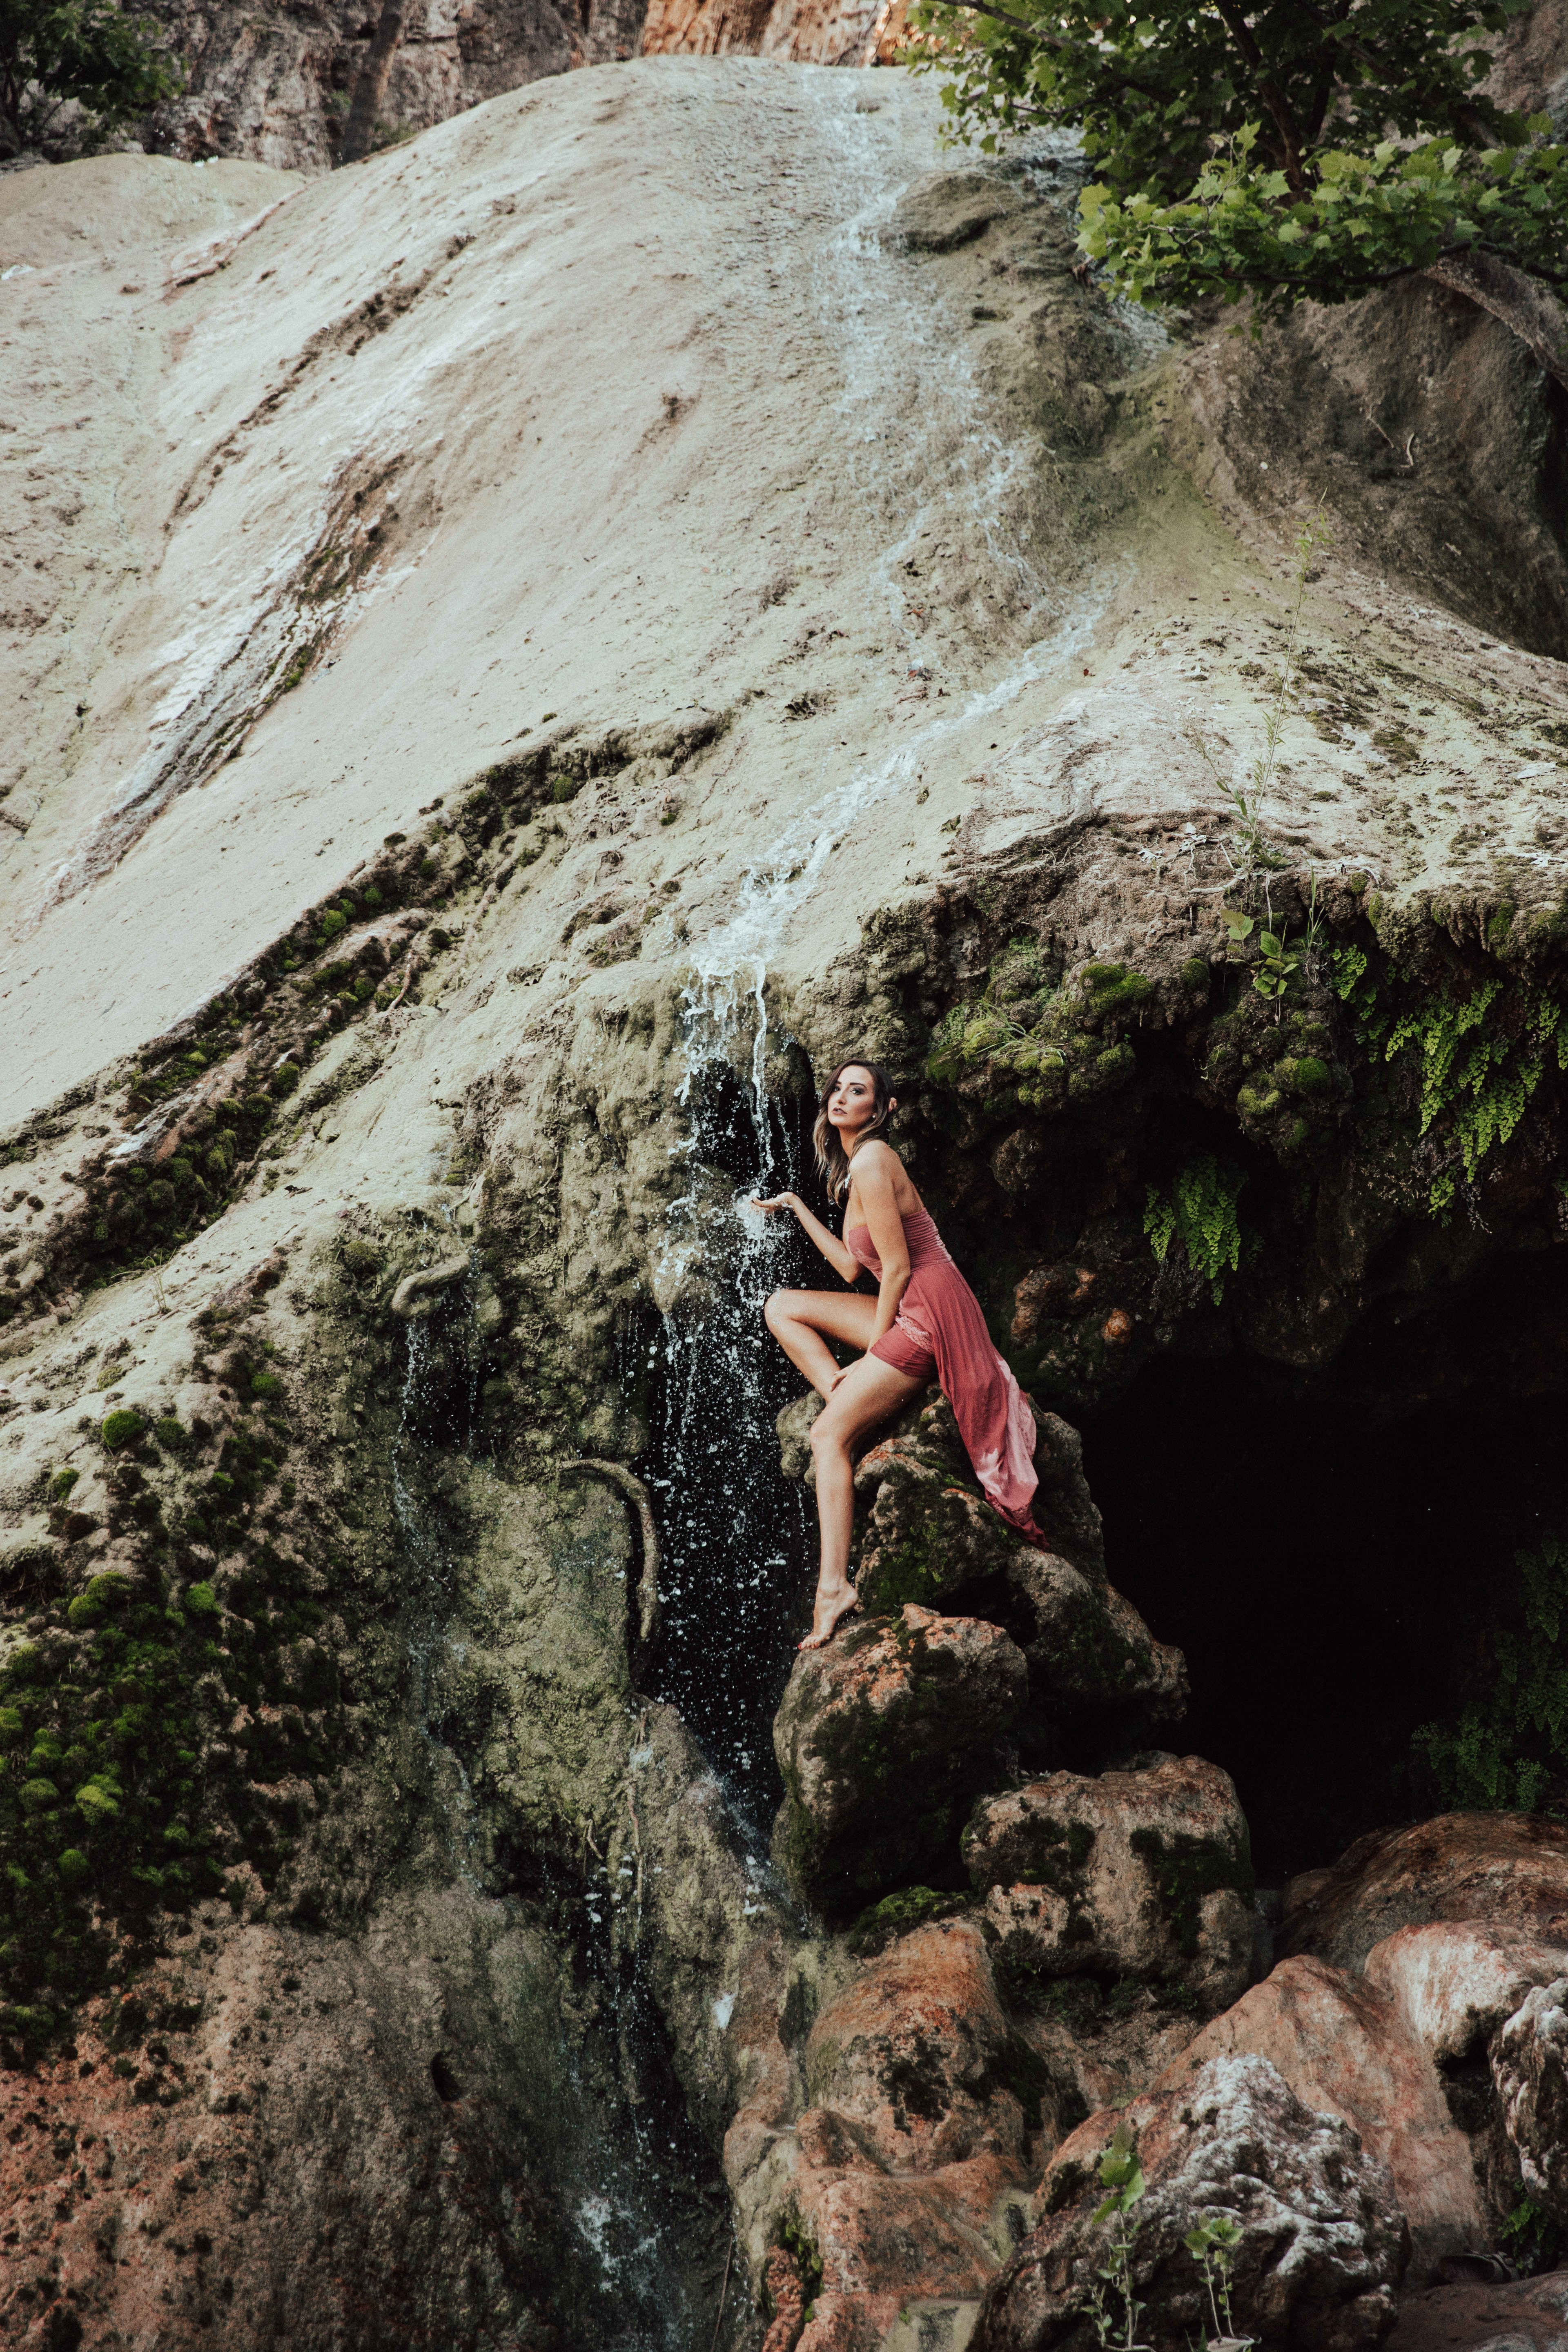 Woman posed like a water nymph near waterfall in a natural landscape